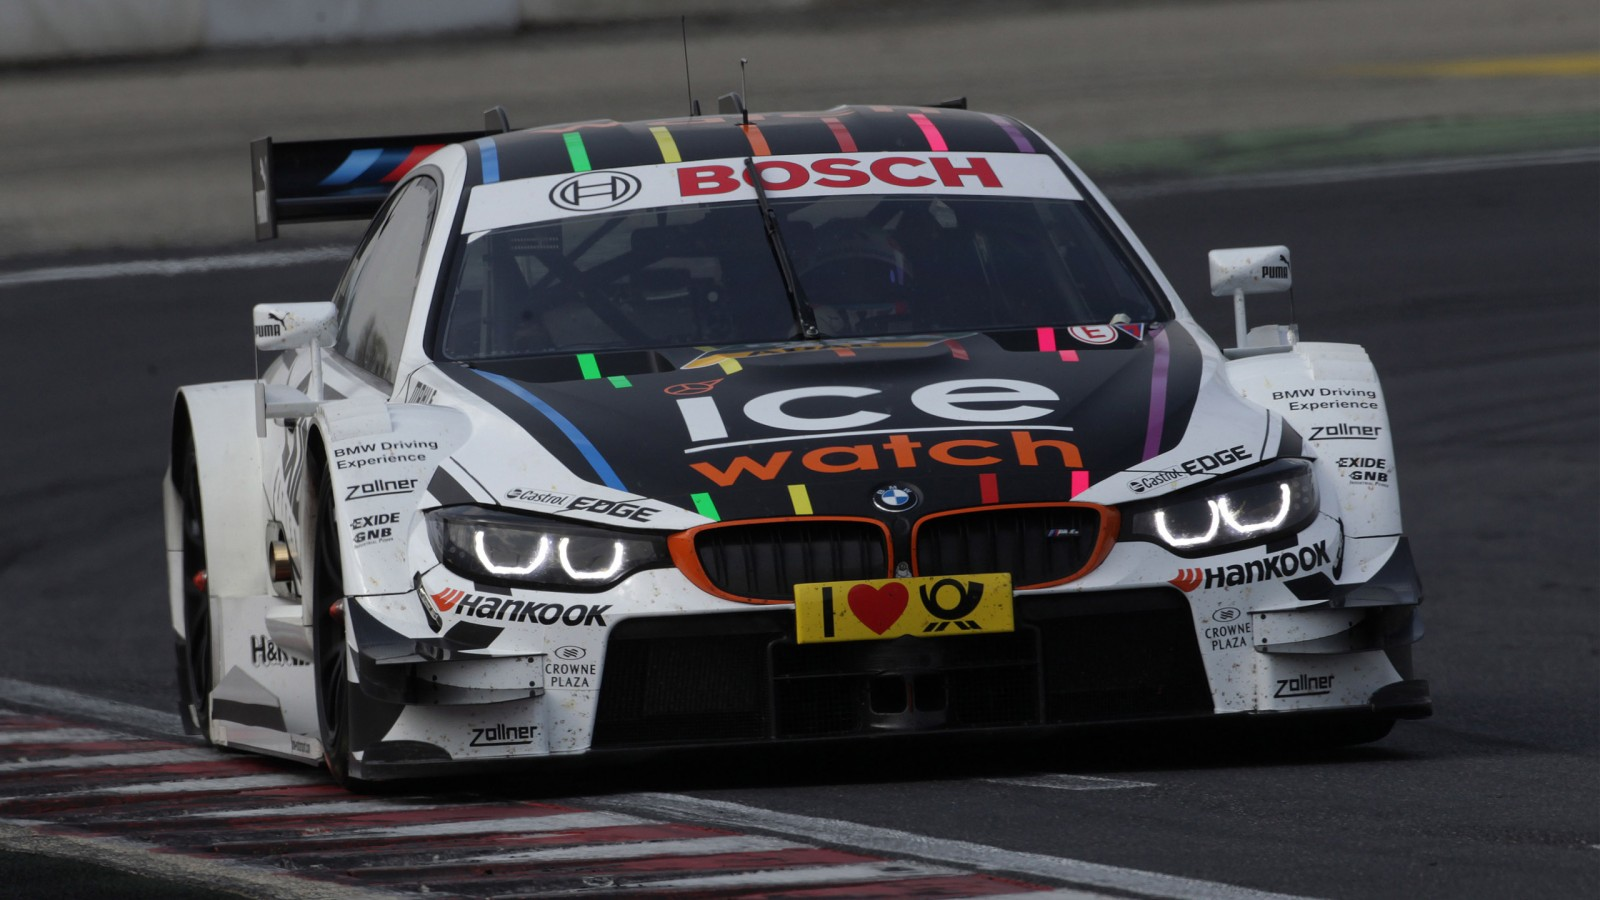 2014 Bmw M4 Dtm Wallpaper Hd Car Wallpapers Id 4375